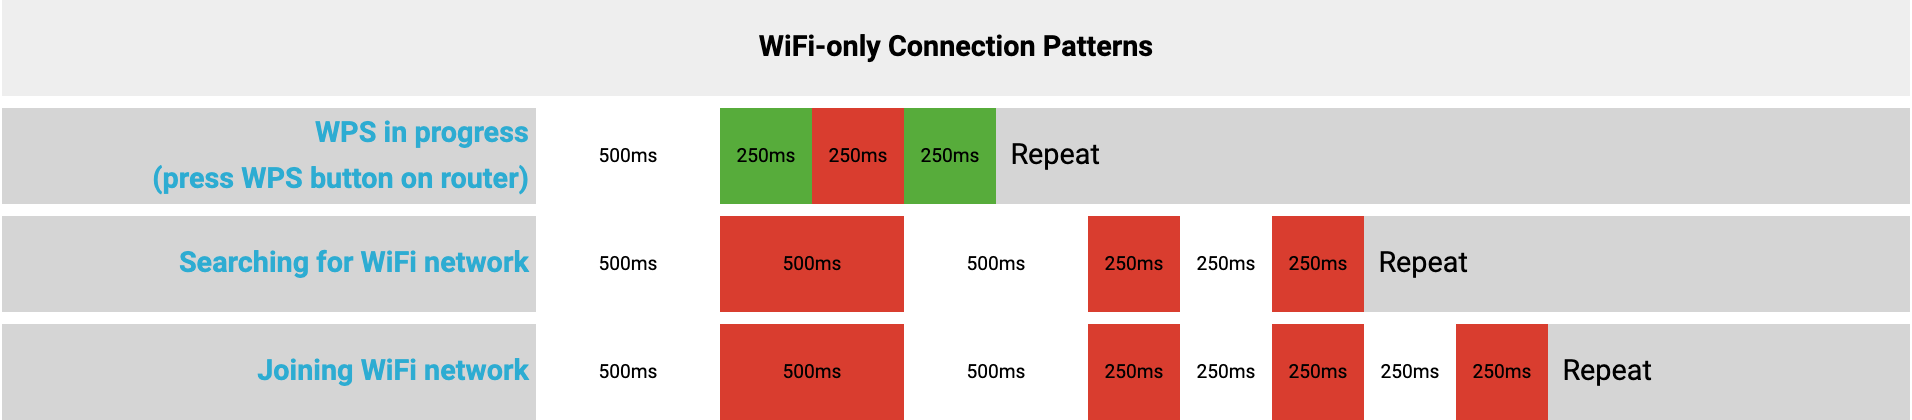 wifi-only_patterns.png